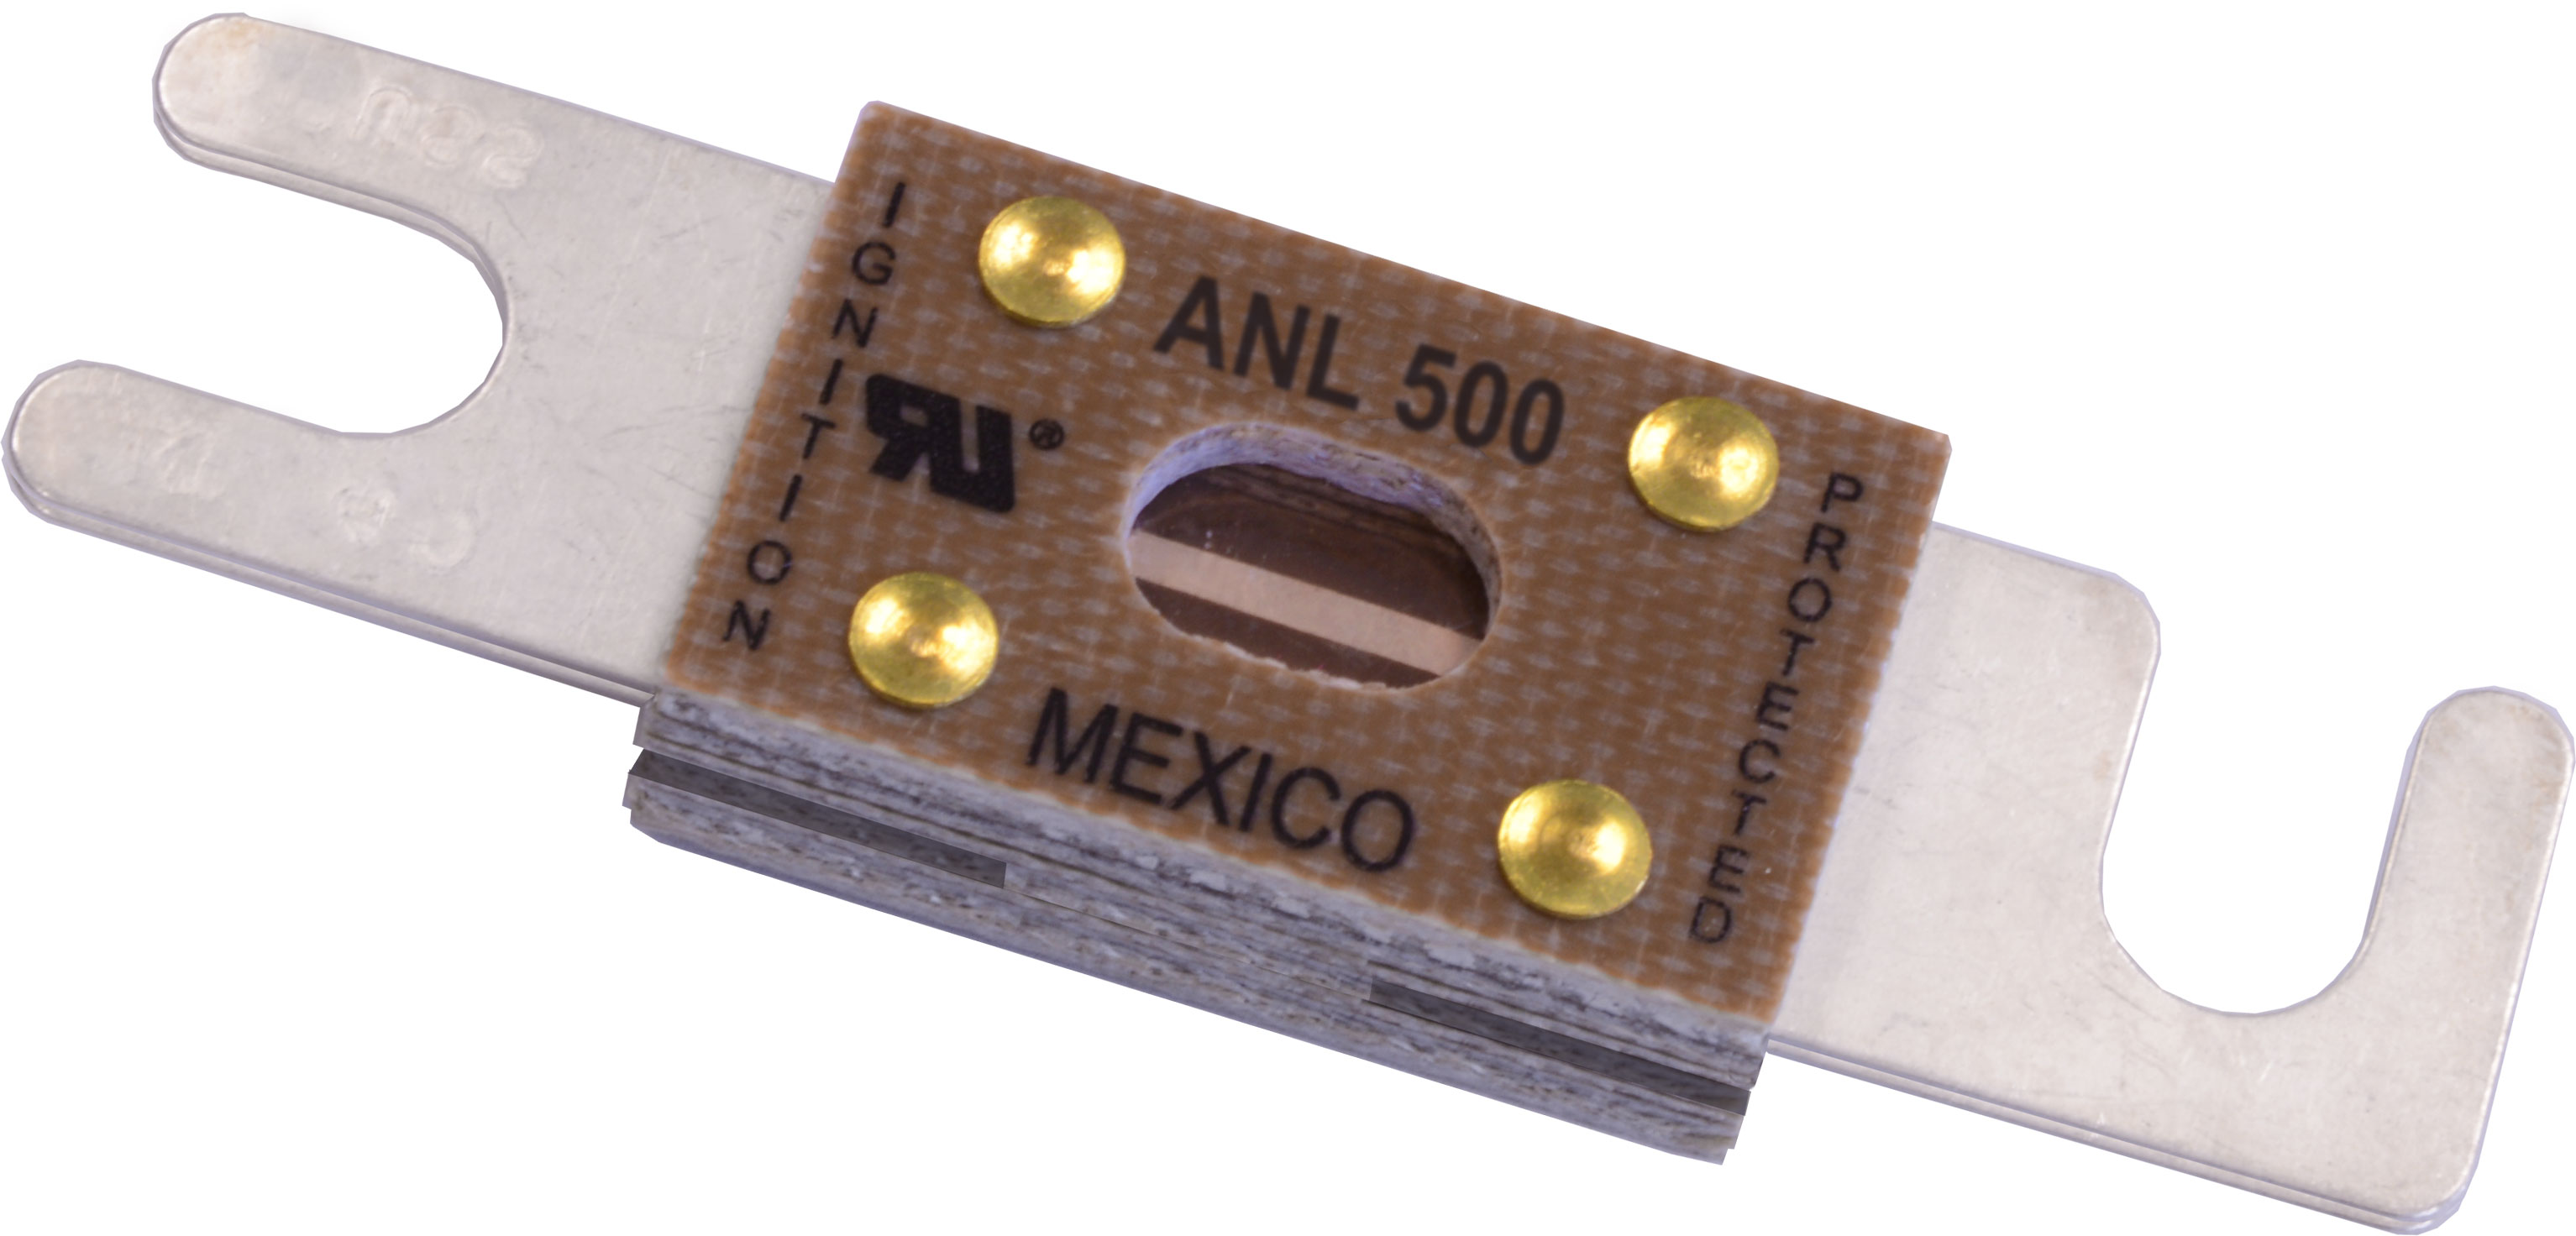 50 Amp Wire Size >> ANL Fuse - 500 Amp - Blue Sea Systems